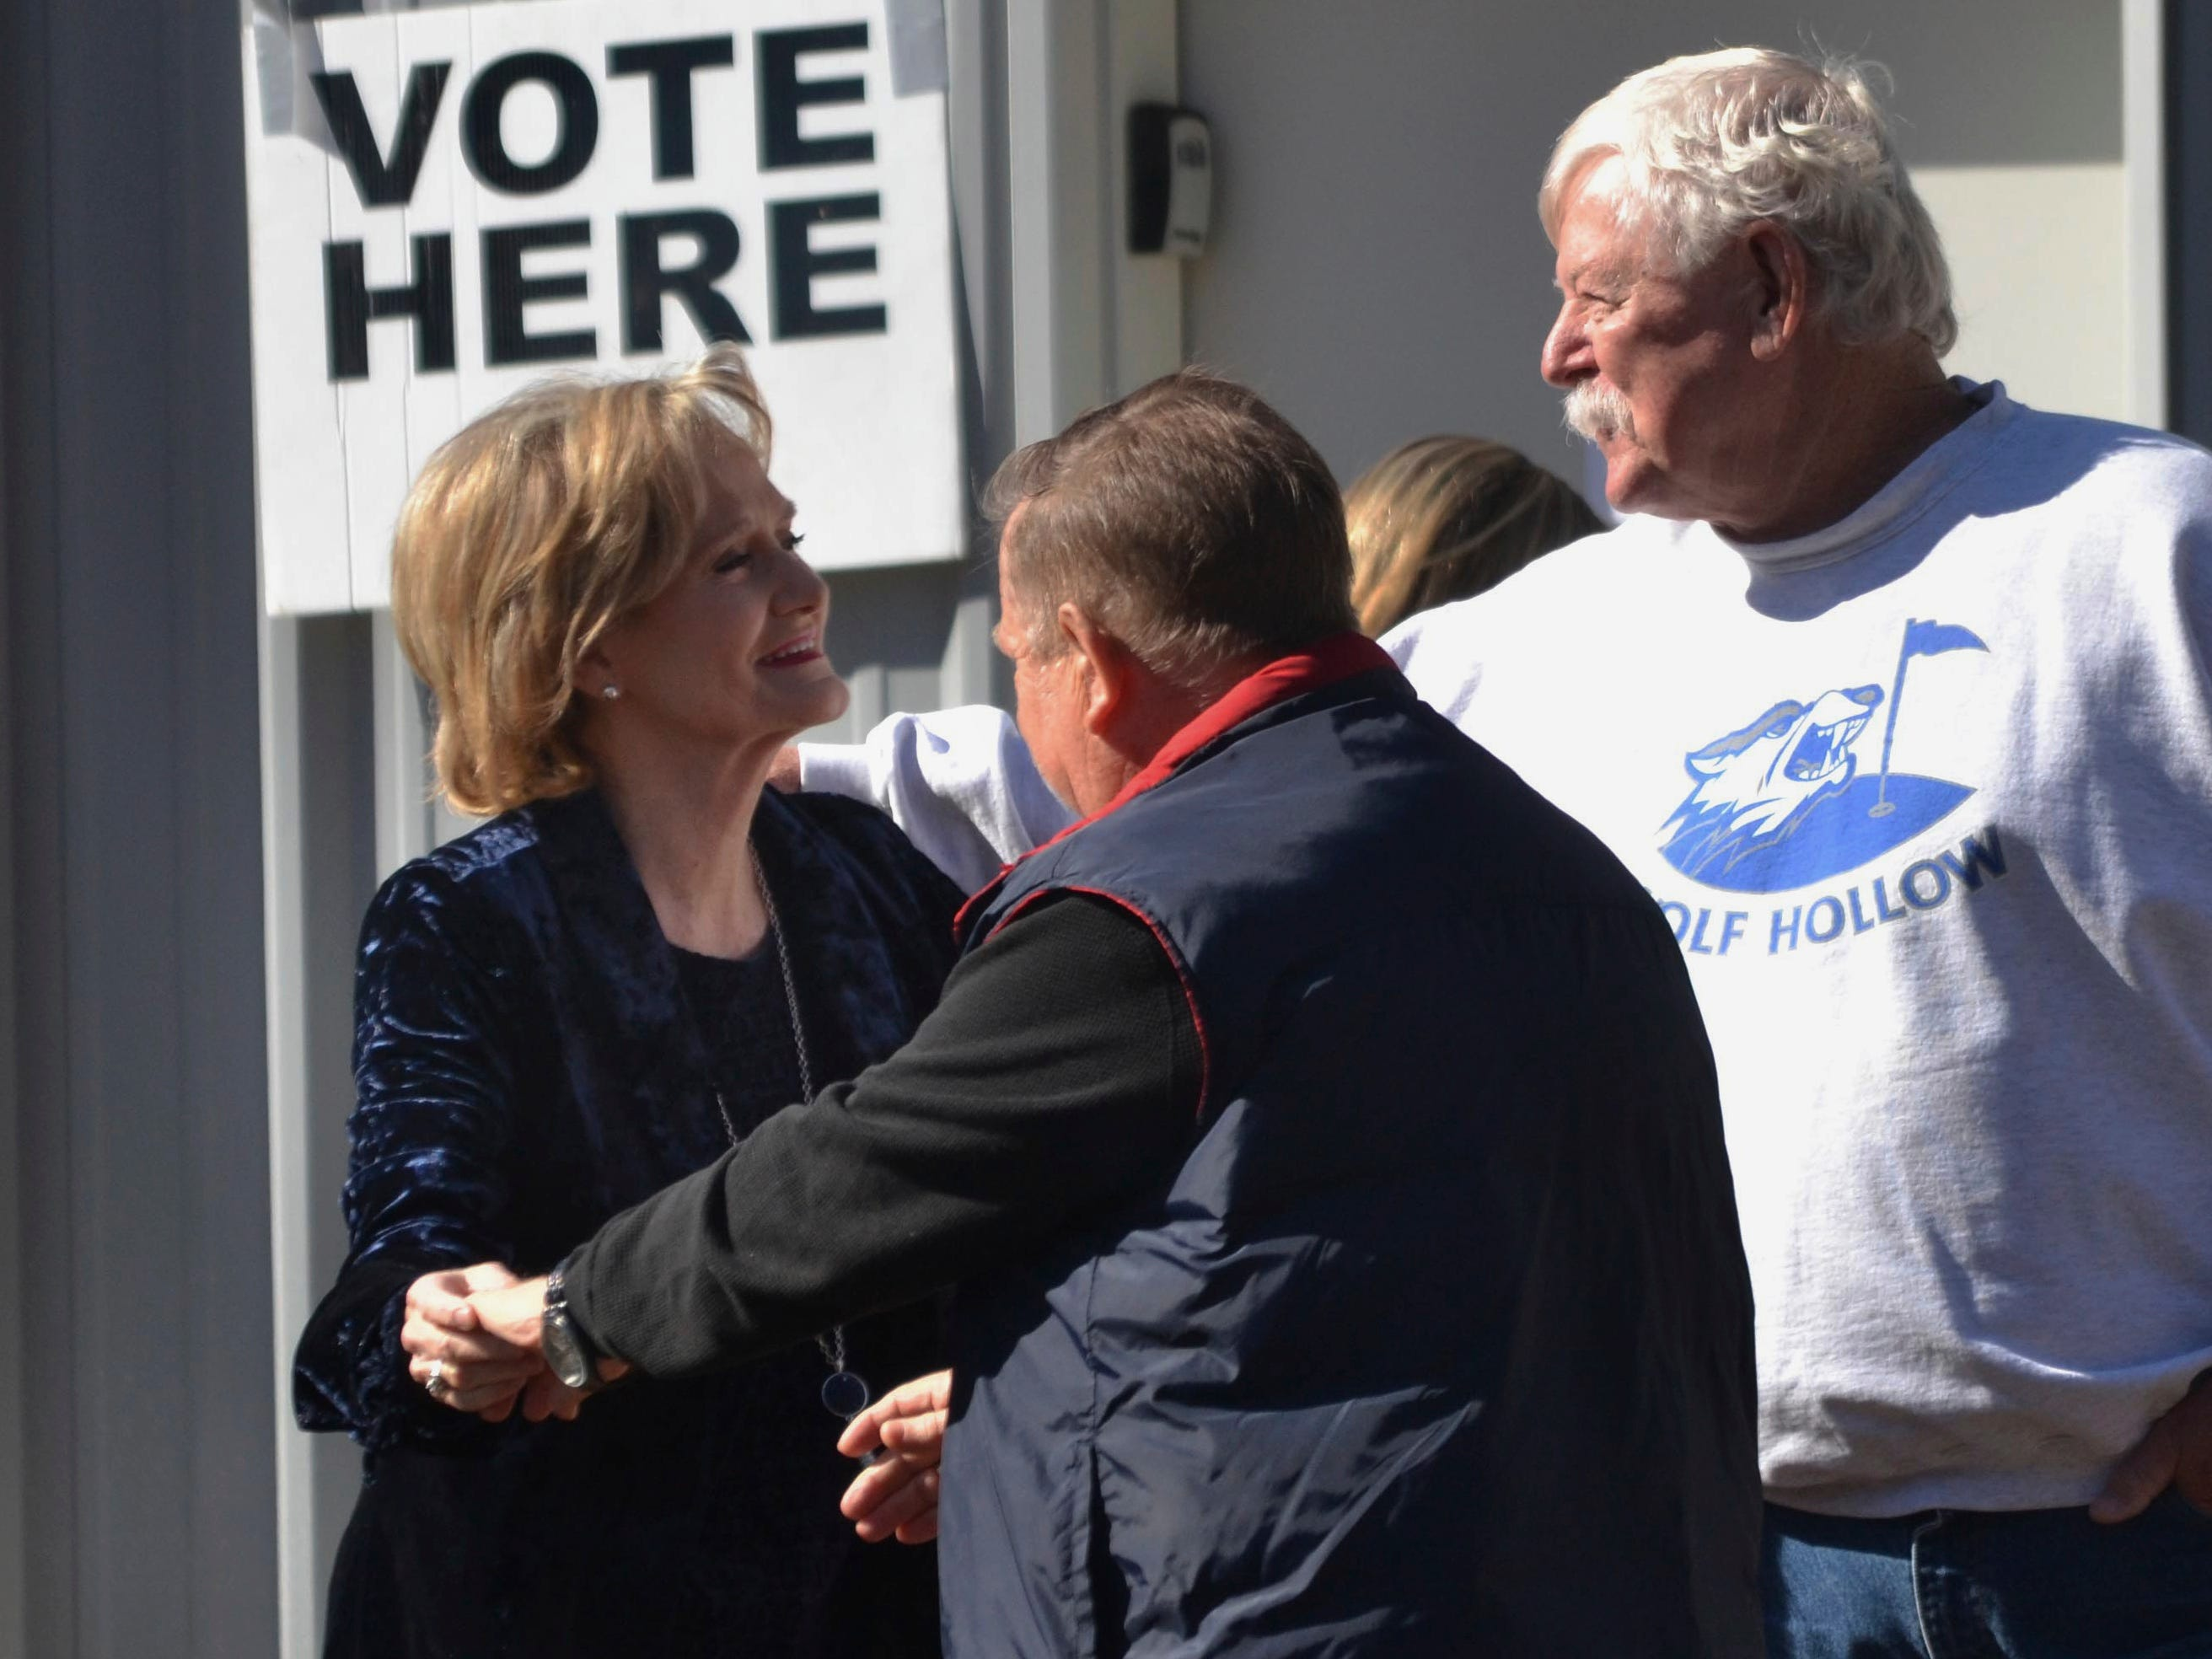 Appointed Republican U.S. Sen. Cindy Hyde-Smith, center, greets neighbors at her Brookhaven, Miss., precinct after voting Tuesday, Nov. 27, 2018, in her runoff race against Democrat Mike Espy.